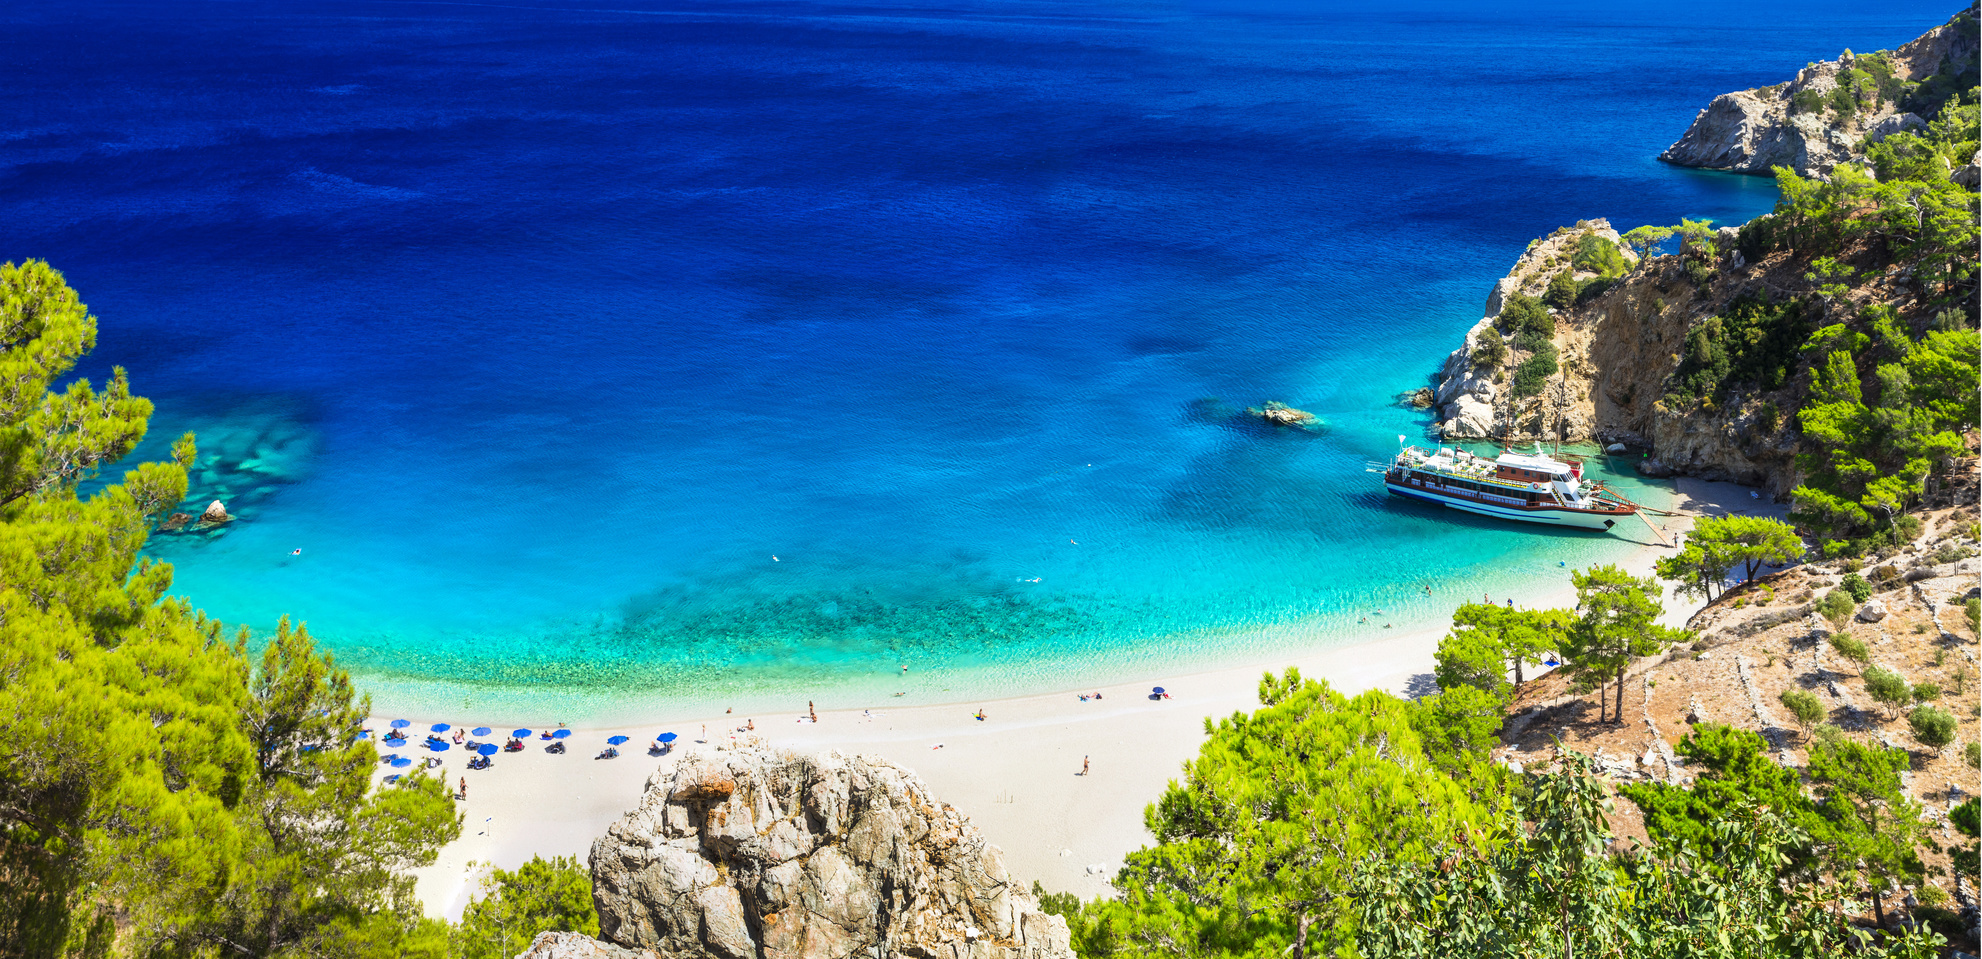 Internships in Spain or on the Greek islands with s-w-e-p